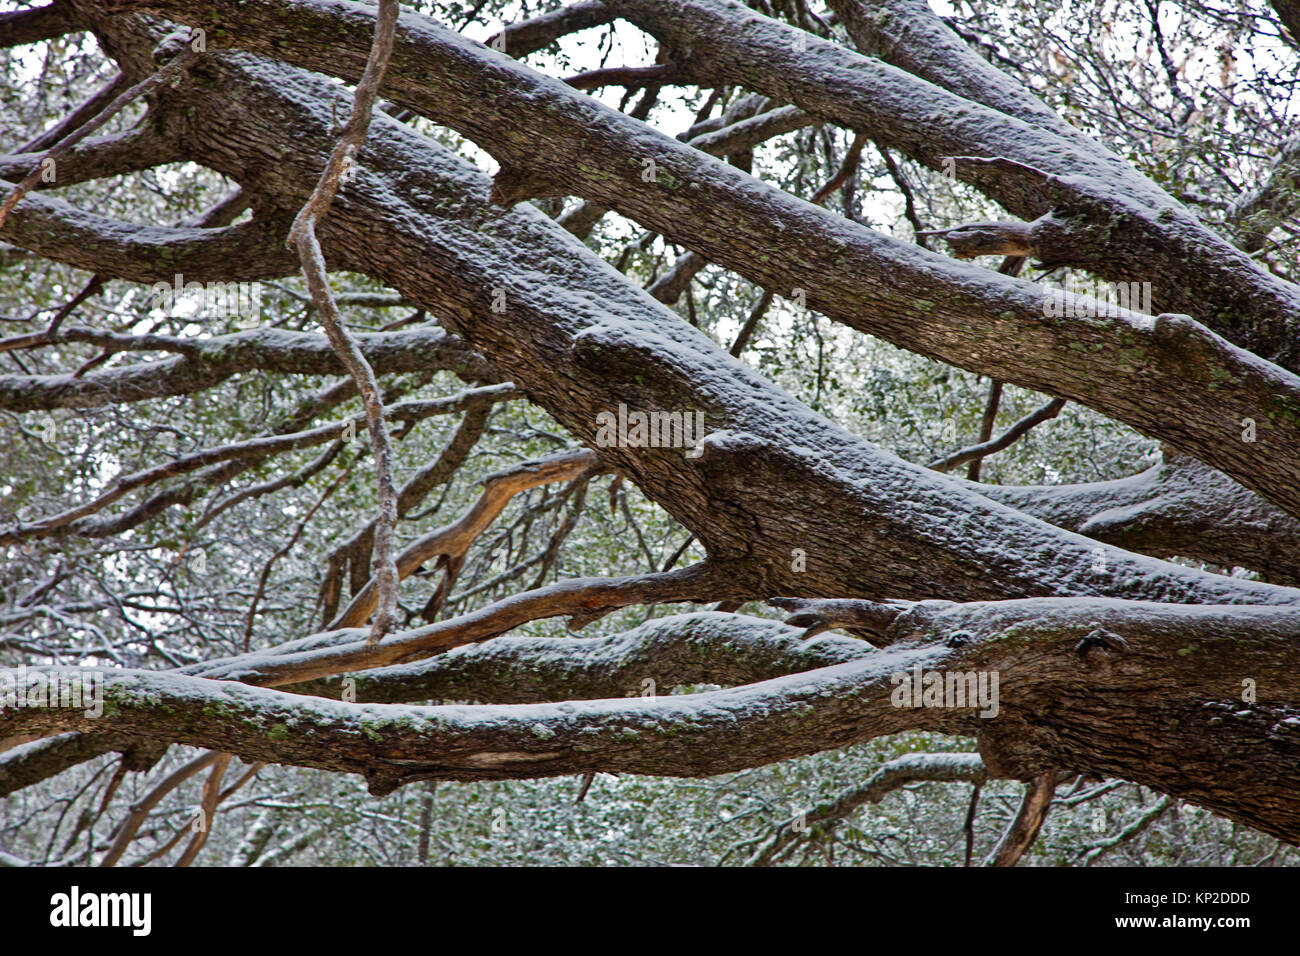 A snow covered tree on CHEWS RIDGE in LOS PADRES NATIONAL FOREST - CARMEL VALLEY, CALIFORNIA - Stock Image